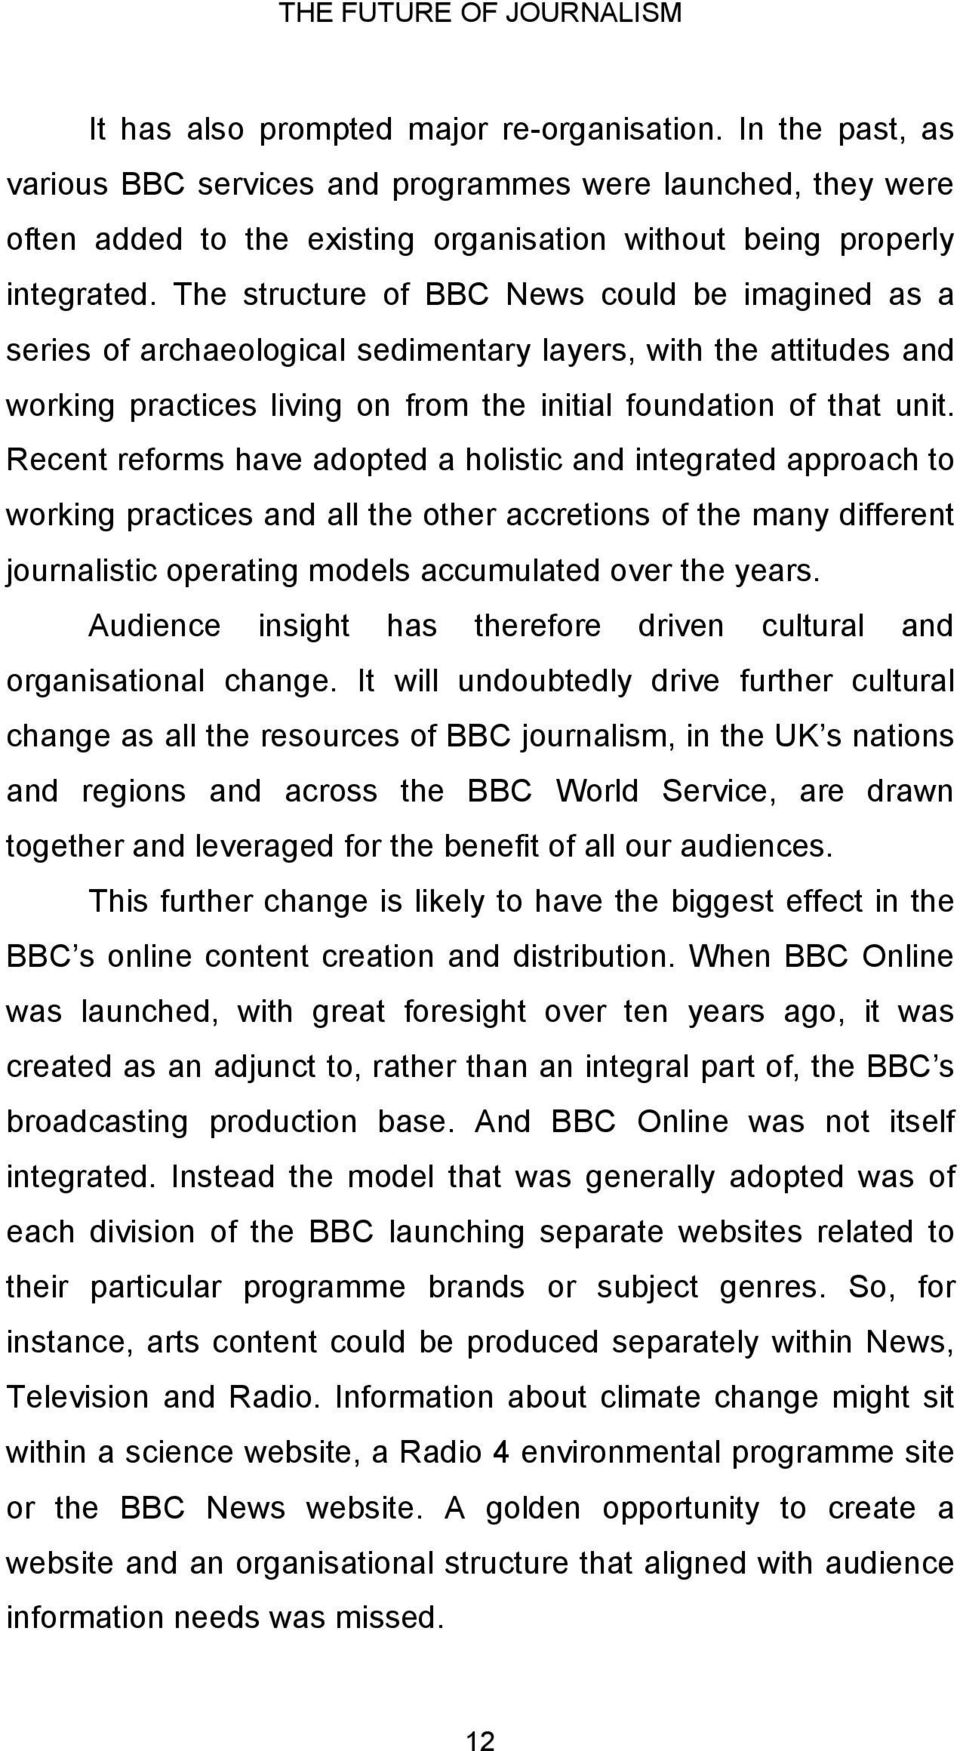 The structure of BBC News could be imagined as a series of archaeological sedimentary layers, with the attitudes and working practices living on from the initial foundation of that unit.